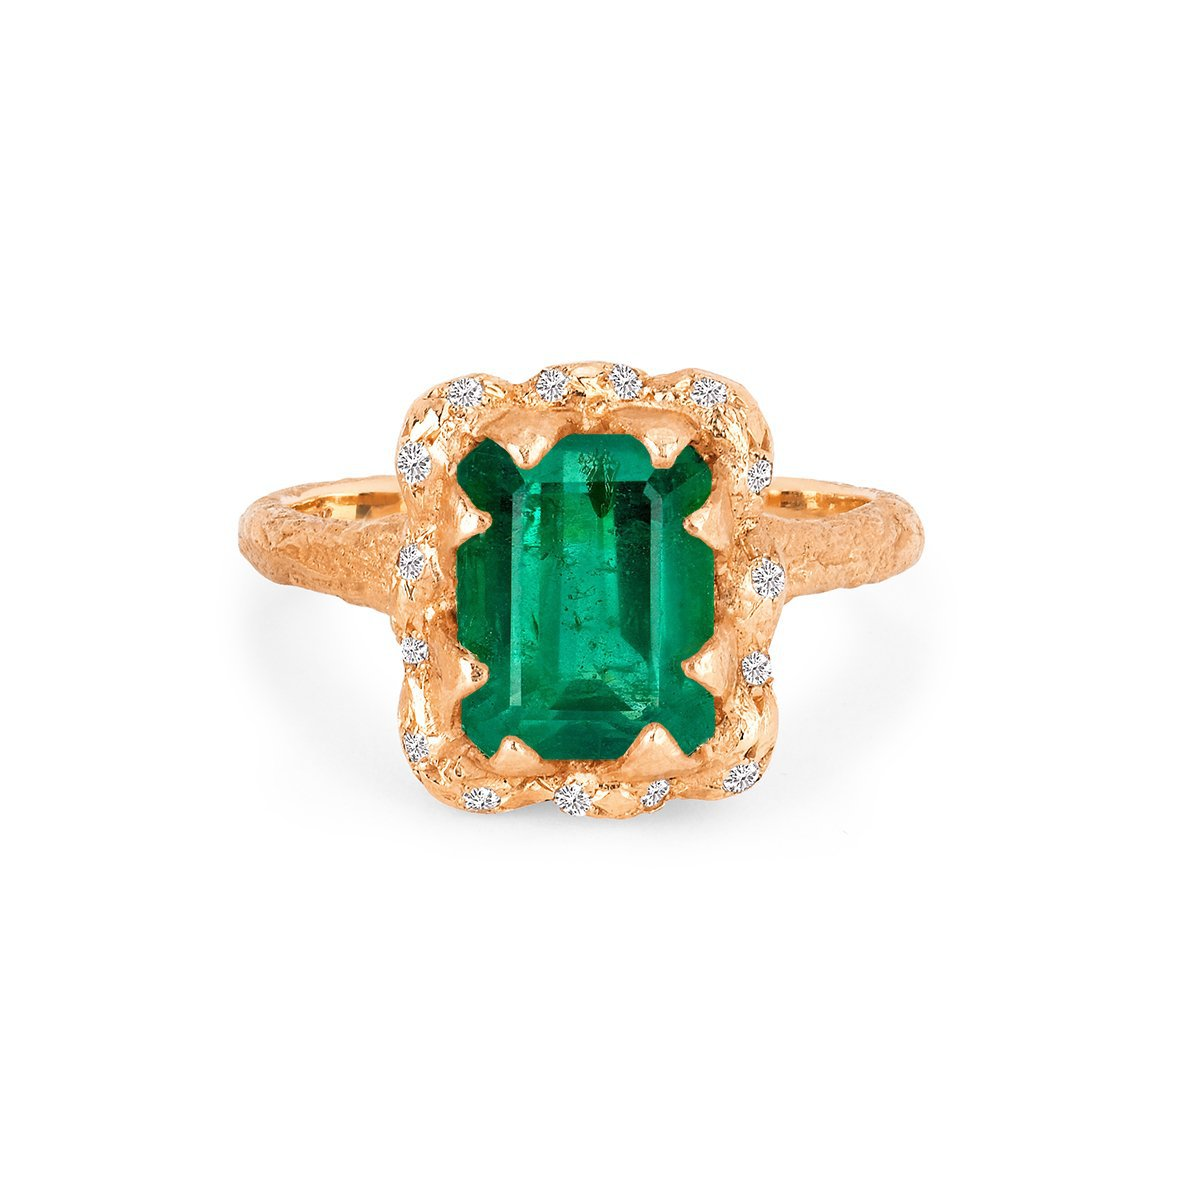 18k Queen Emerald Cut Emerald Ring with Sprinkled Diamonds